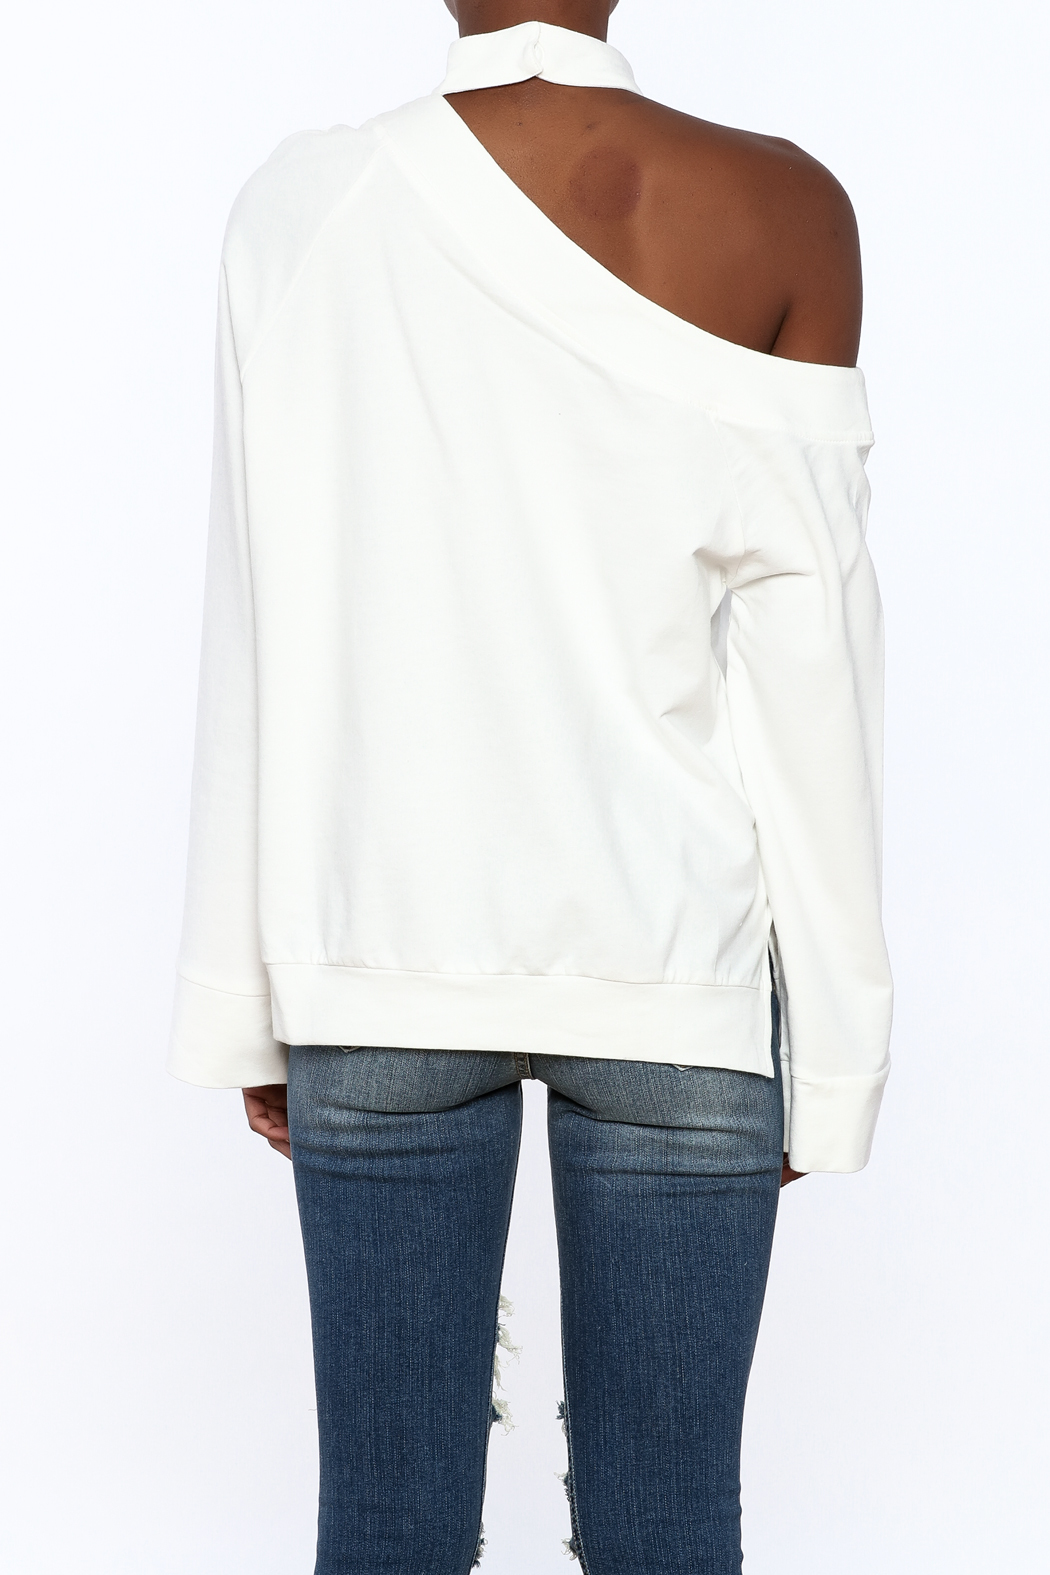 essue White One-Shoulder Top - Back Cropped Image